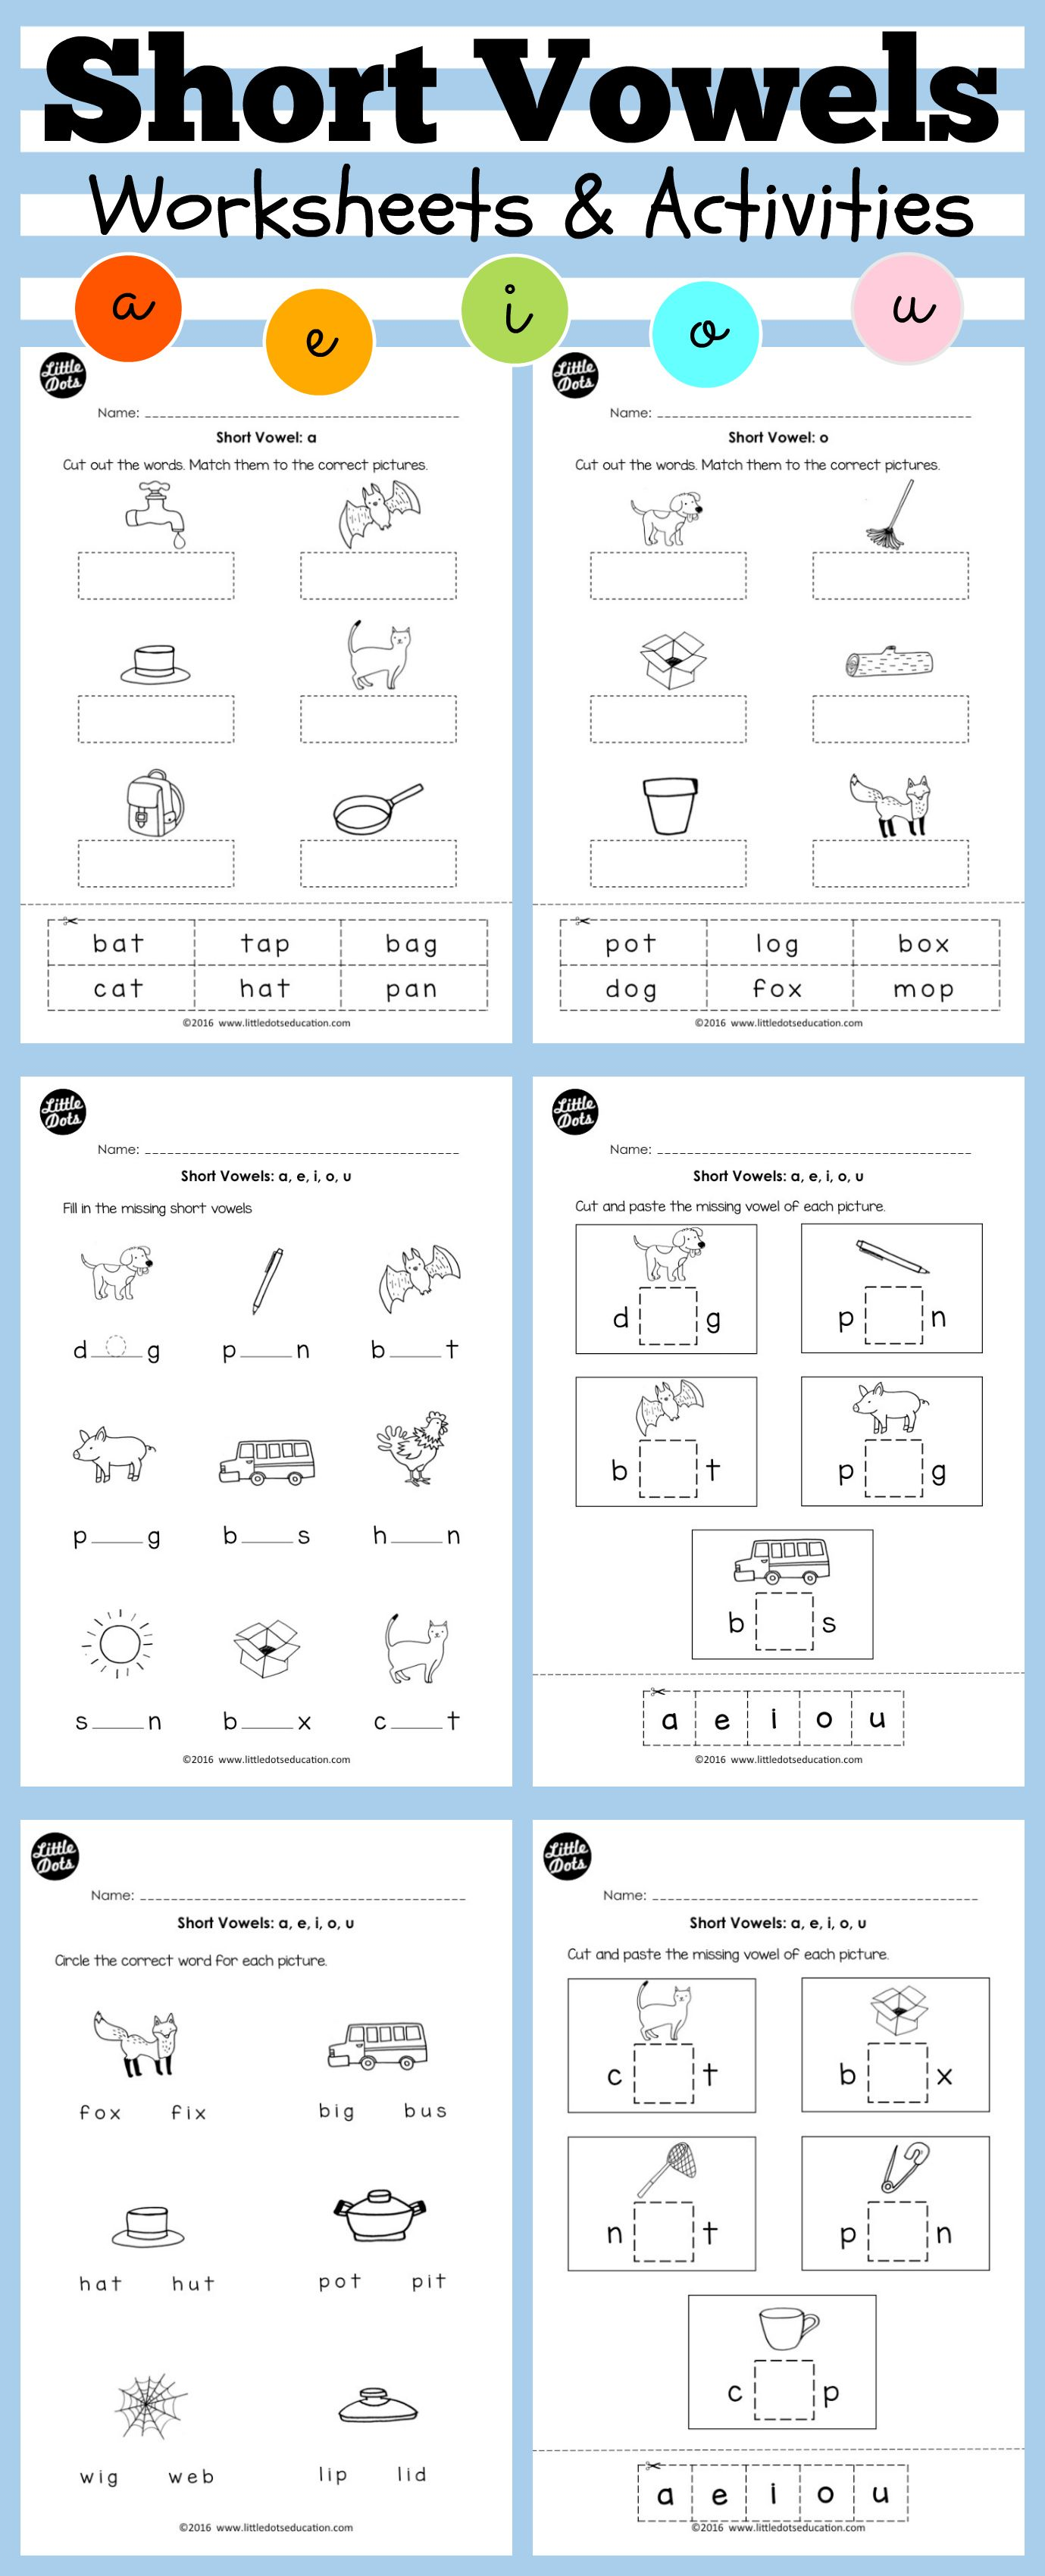 Short Vowels Worksheets And Activities For Preschool Or Kindergarten Class Practice To Hear The